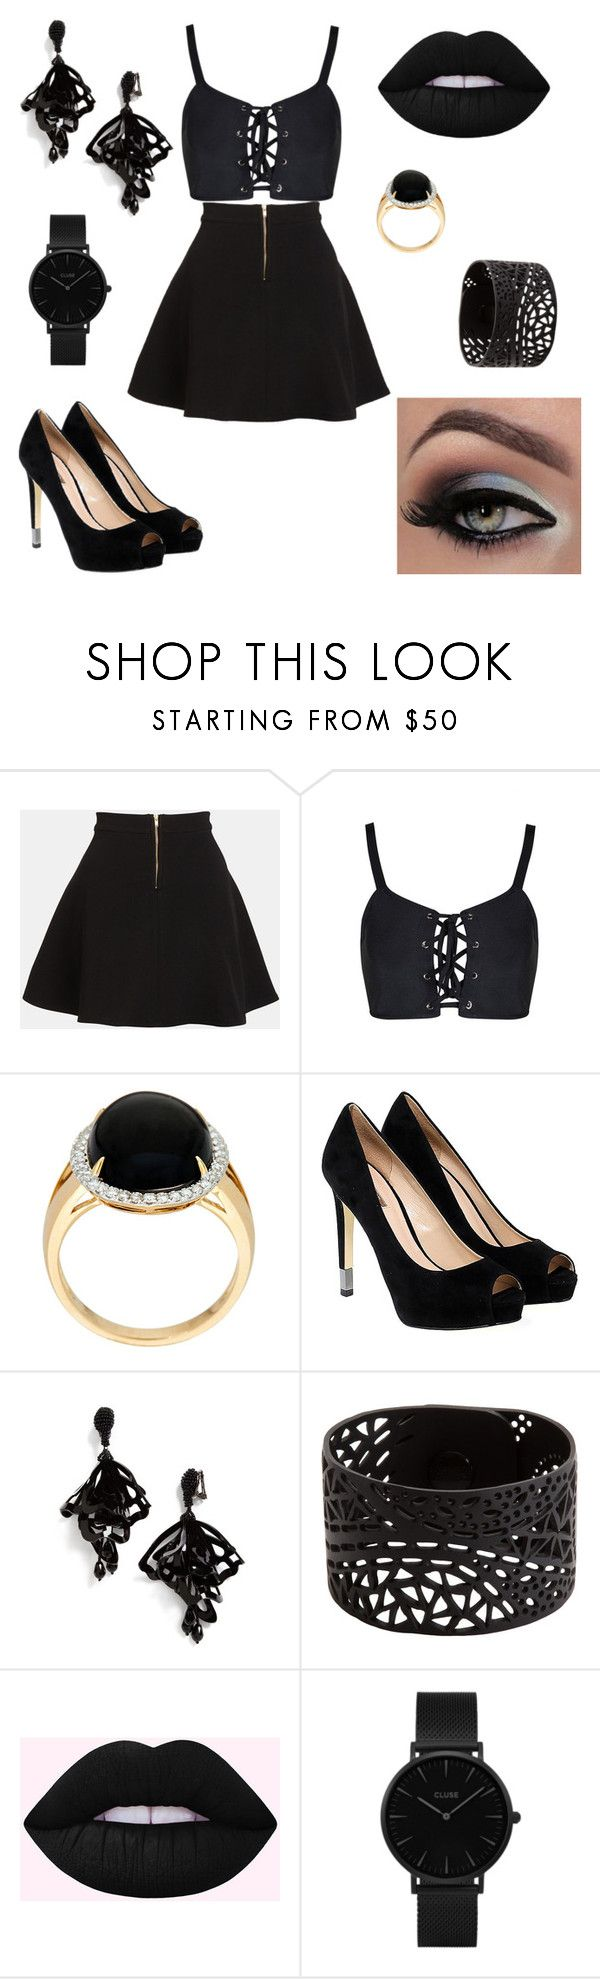 """"" by hollycat771 ❤ liked on Polyvore featuring Parker, GUESS, Oscar de la Renta and CLUSE"